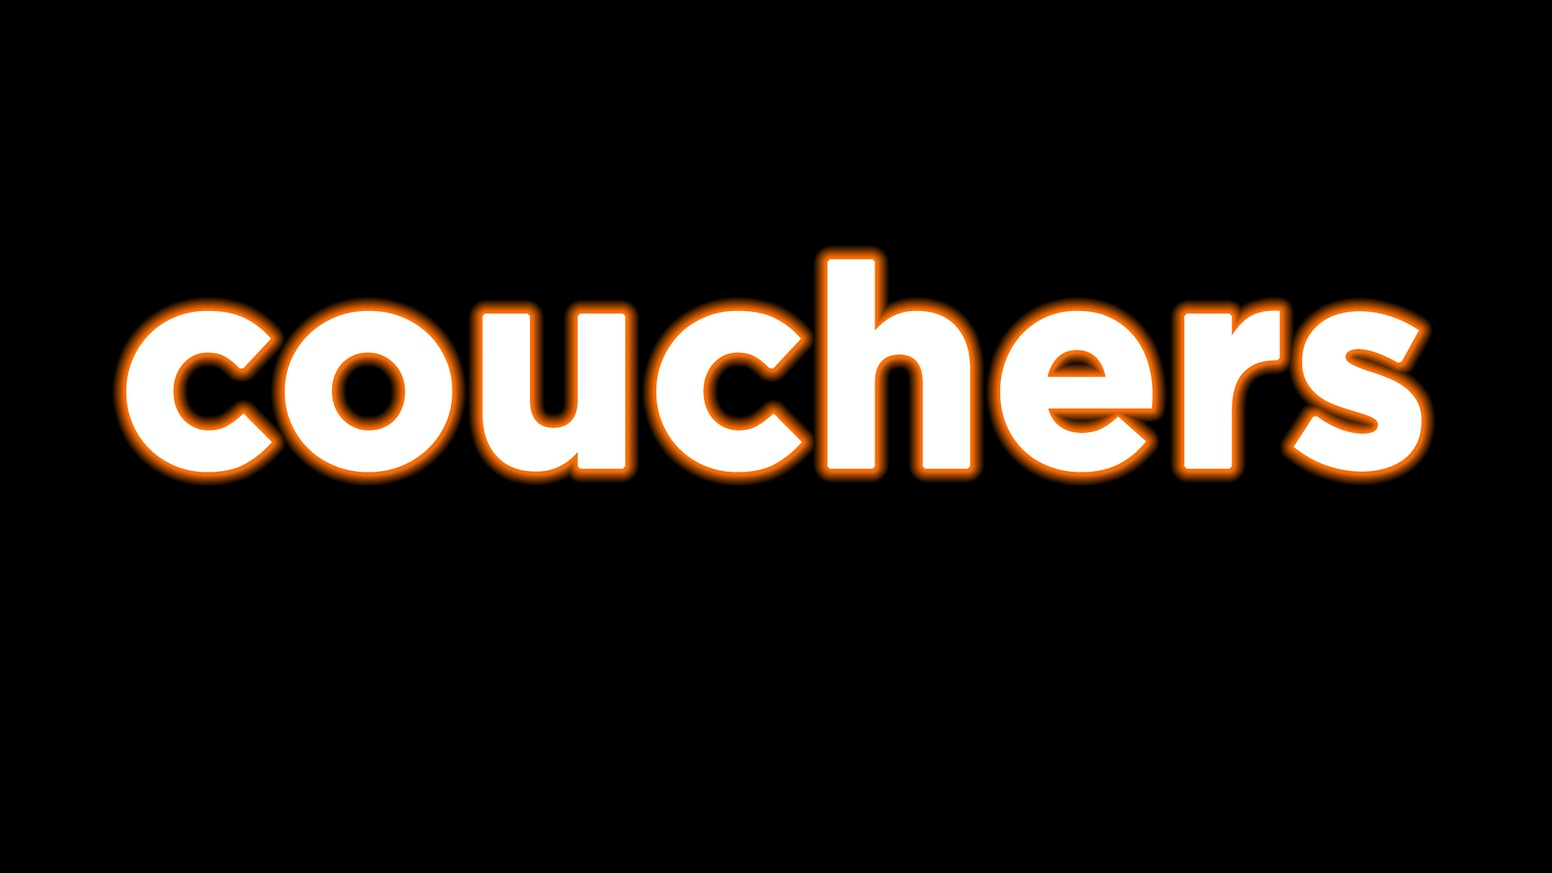 Couchers: Season 2 (formerly Couch Surfers) by Joe